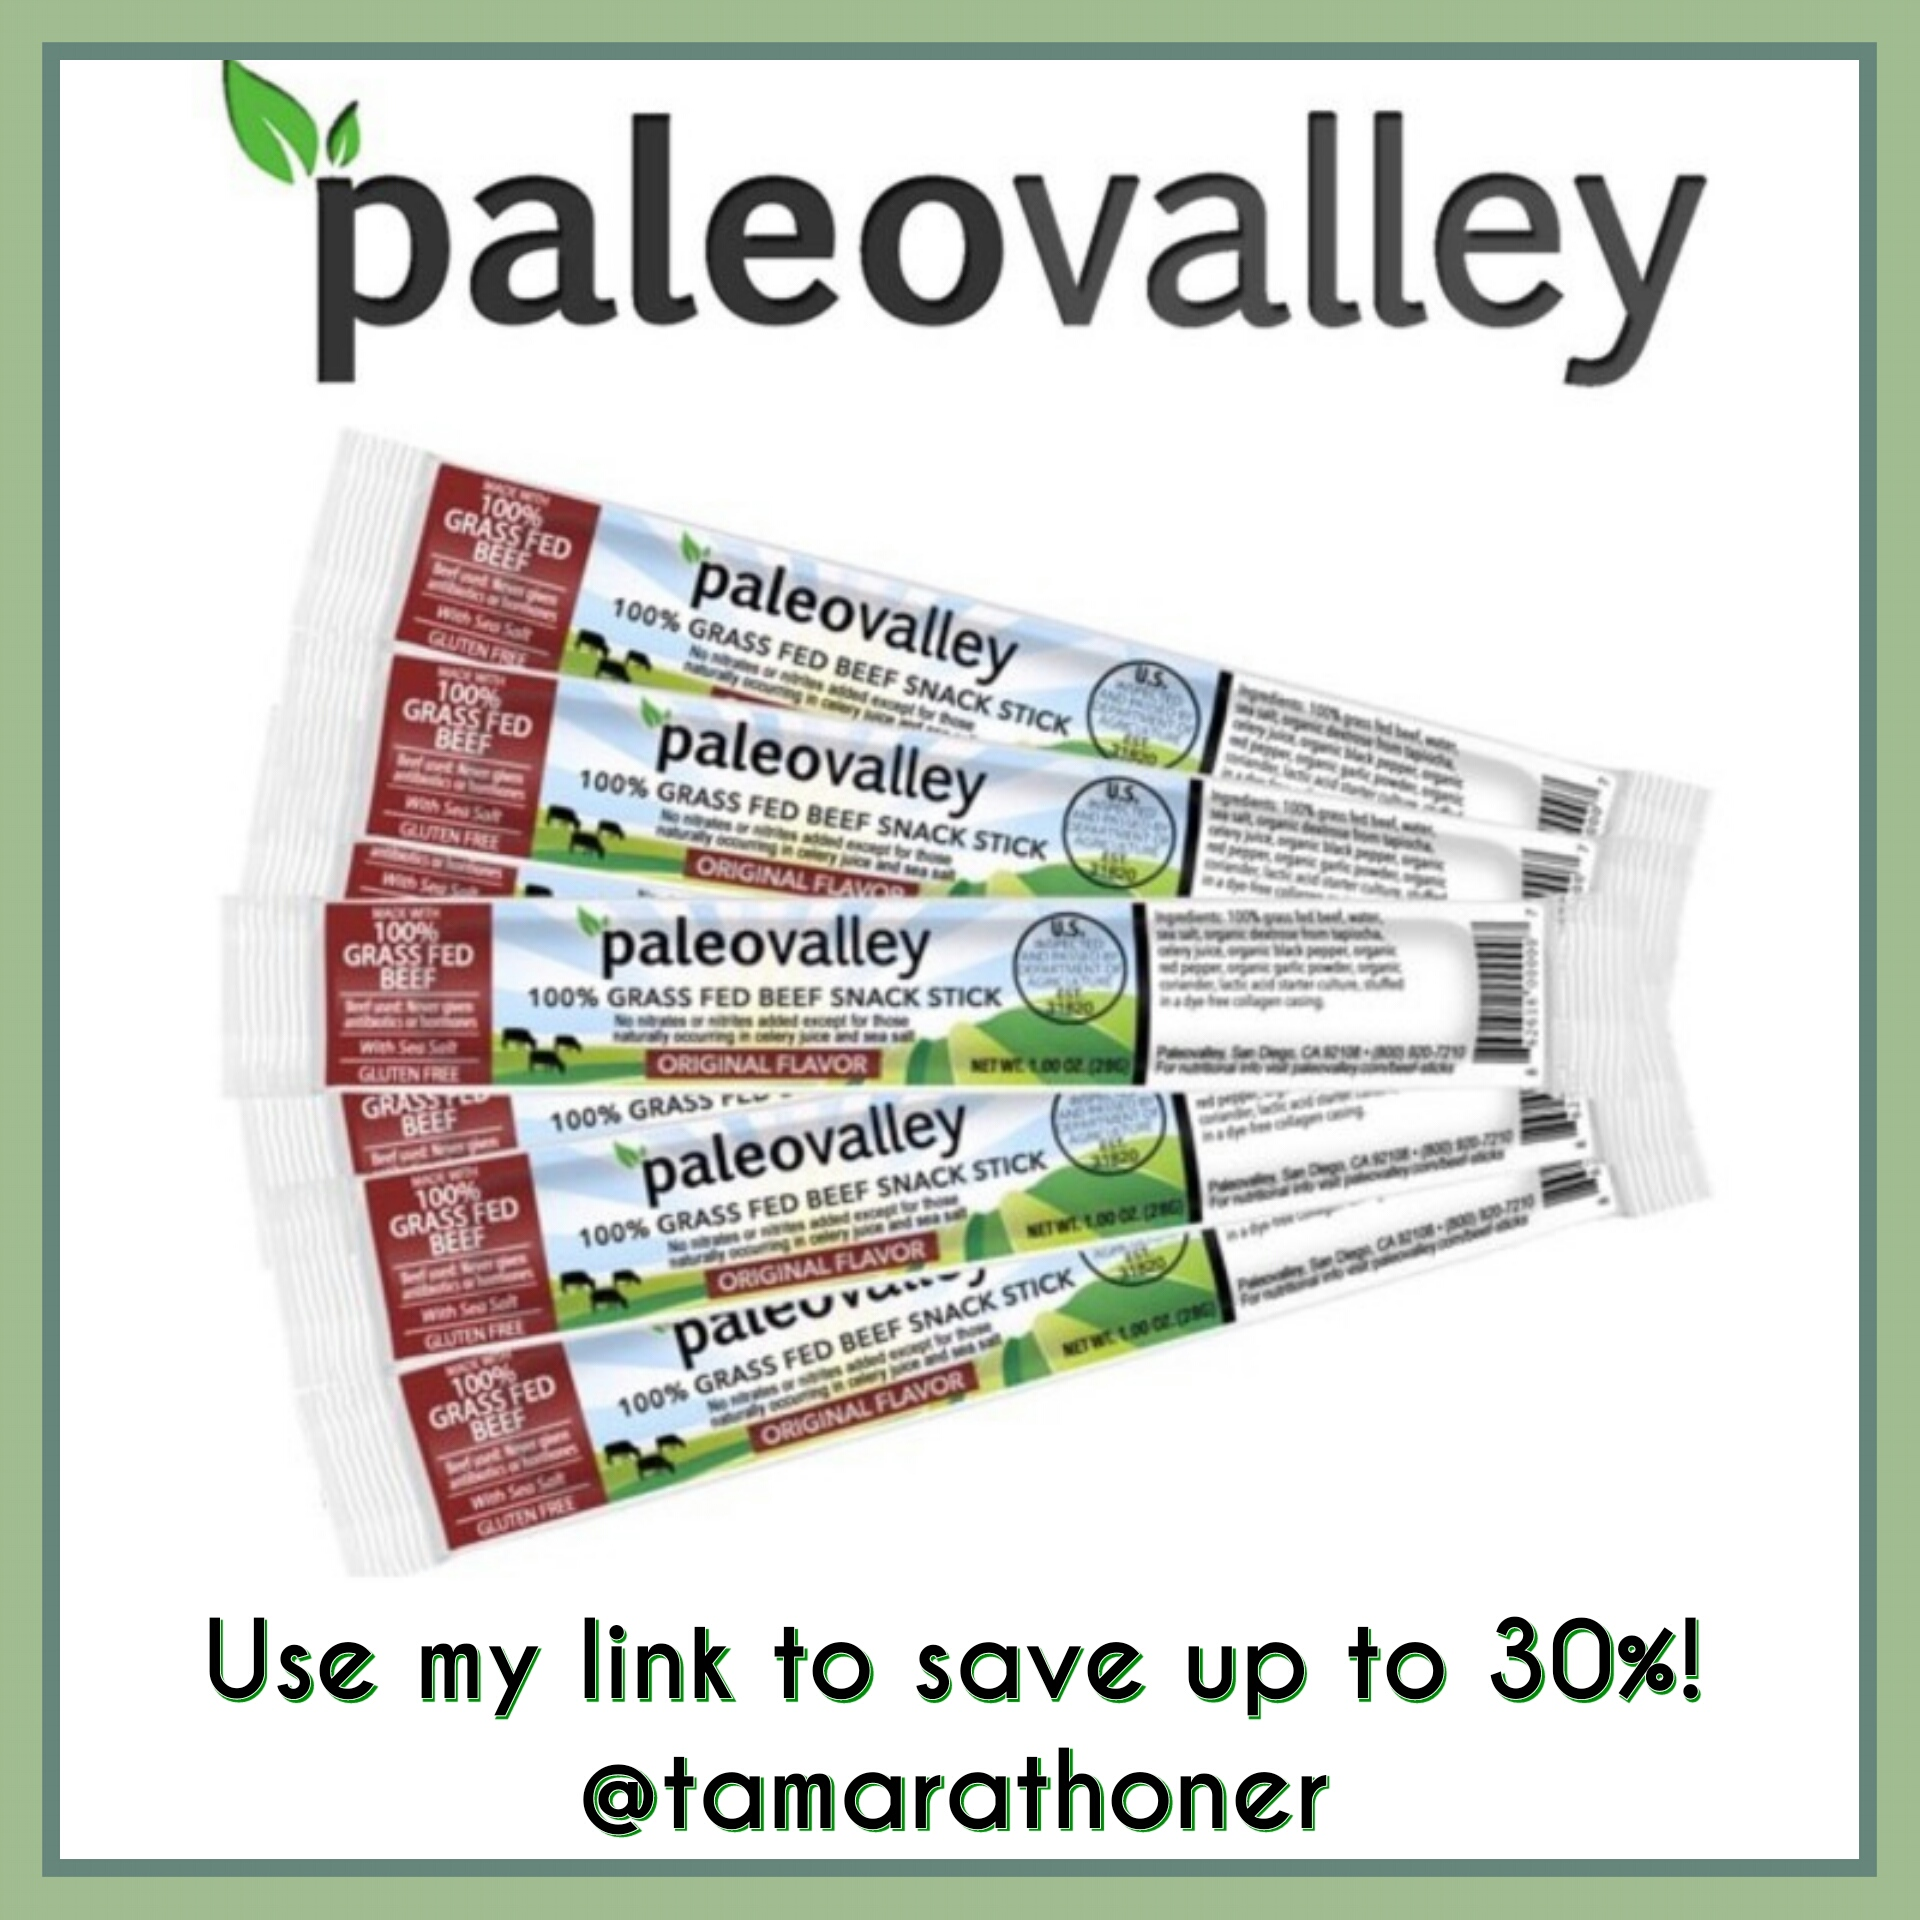 PaleoValley